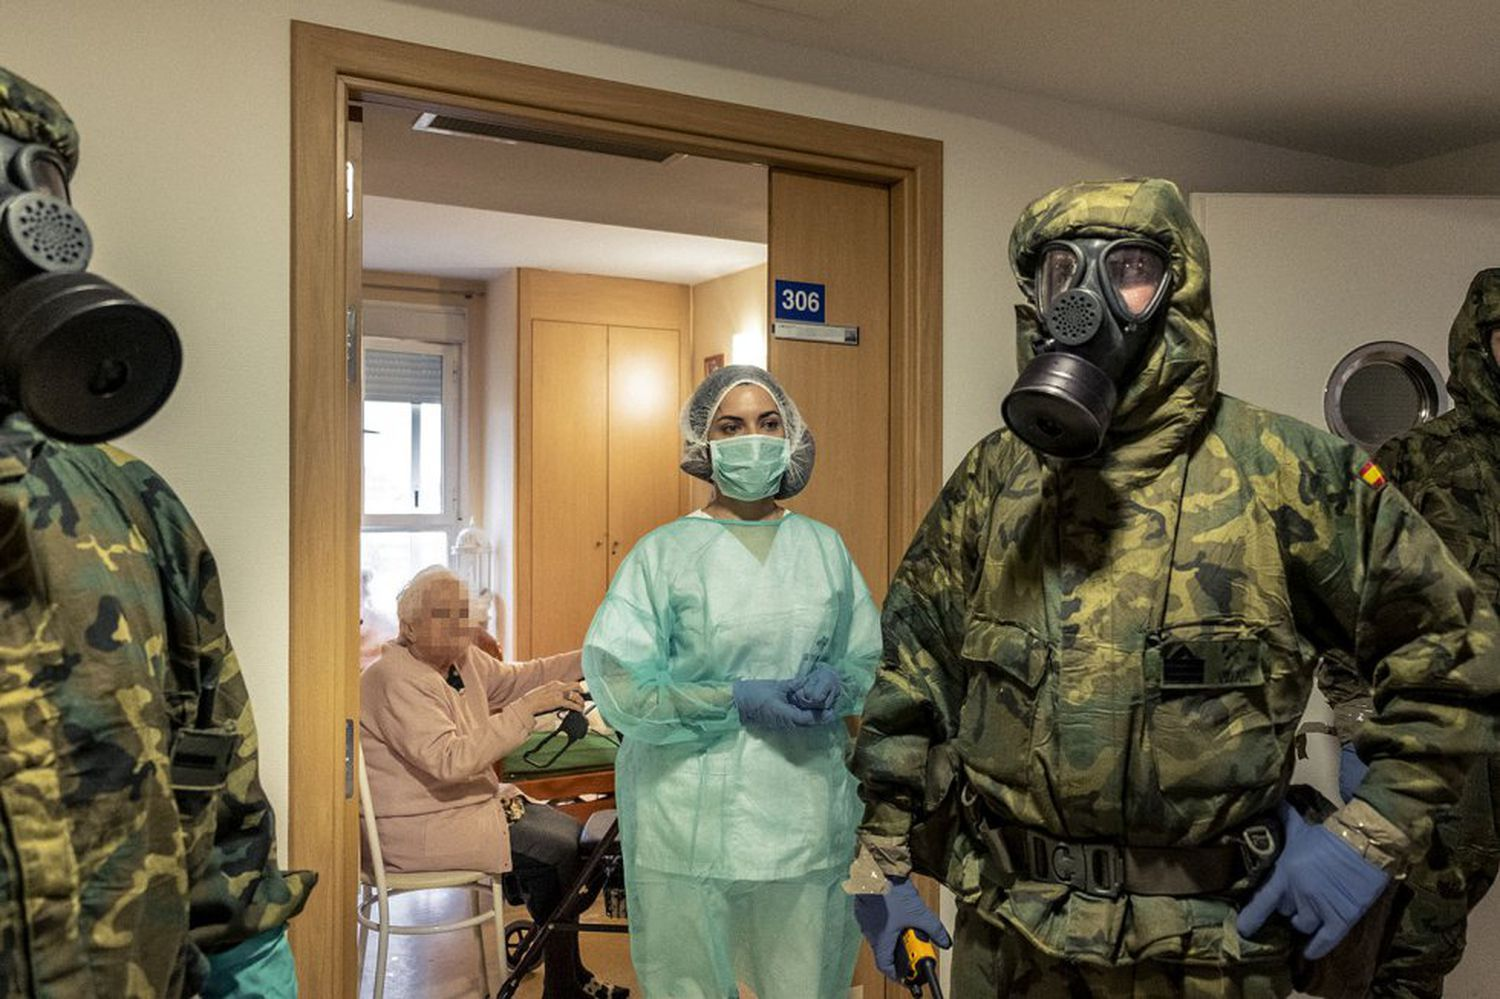 Soldiers from the Alcalá de Henares Parachute Brigade stationed on the outskirts of Madrid, arrive with their NBC (nuclear, biological and chemical) defense equipment to disinfect a seniors residence.